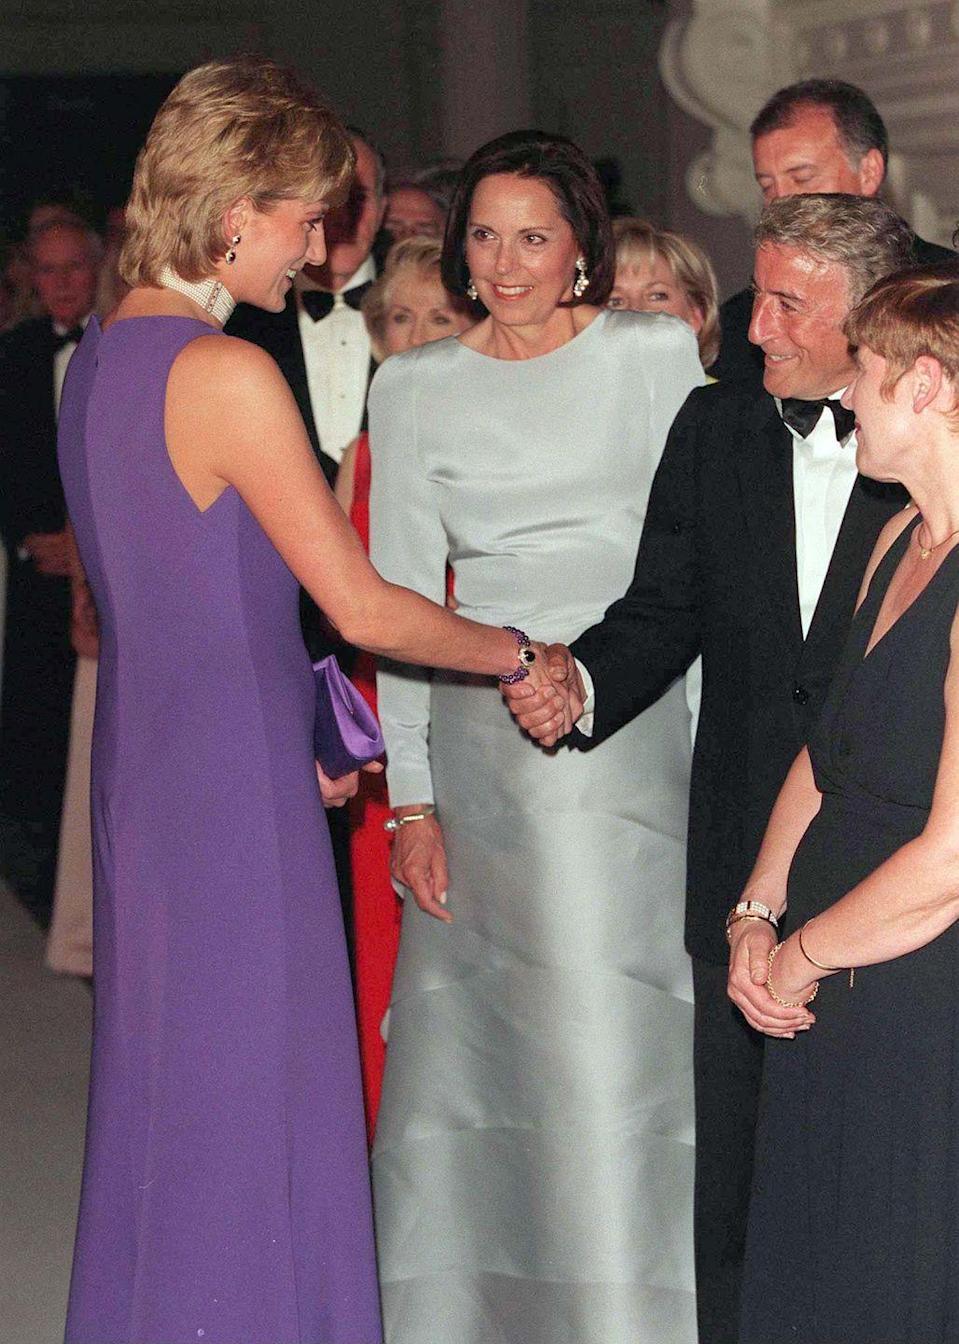 <p>At a gala at the Field Museum of Natural History in Chicago, Tony Bennett donned a classic tuxedo for his introduction to Princess Diana. The Princess wore a purple dress by designer Gianni Versace. </p>